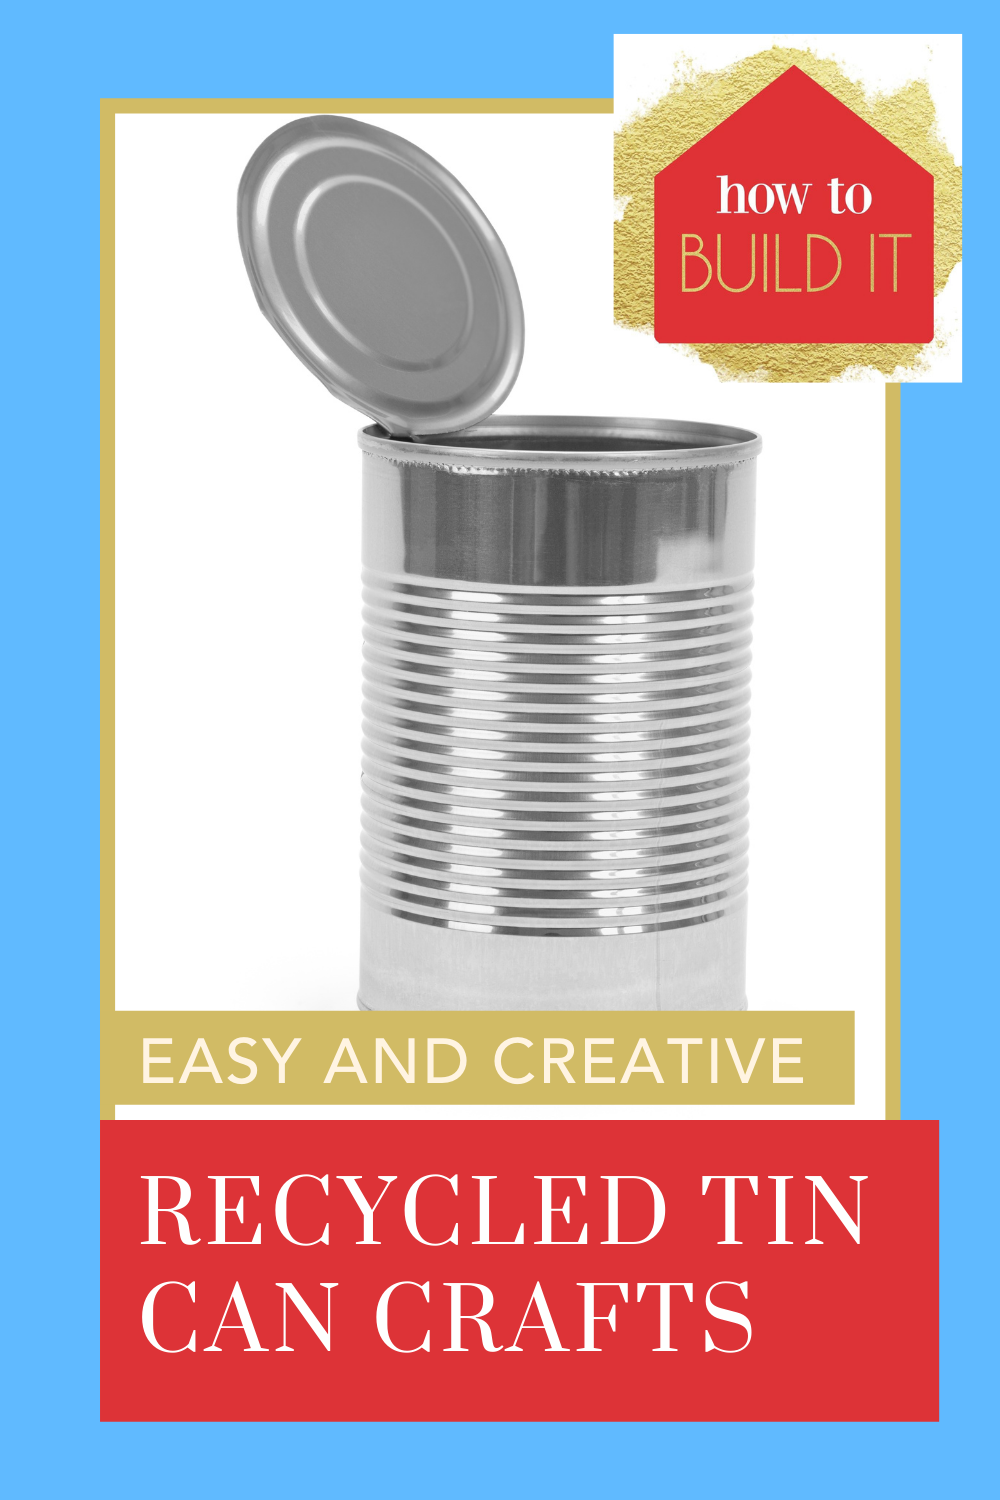 Howtobuildit.org has all the best DIY and home improvement projects for every handyman! Find simple ways to spruce up your home. Check out these recycled tin can crafts to get started now!